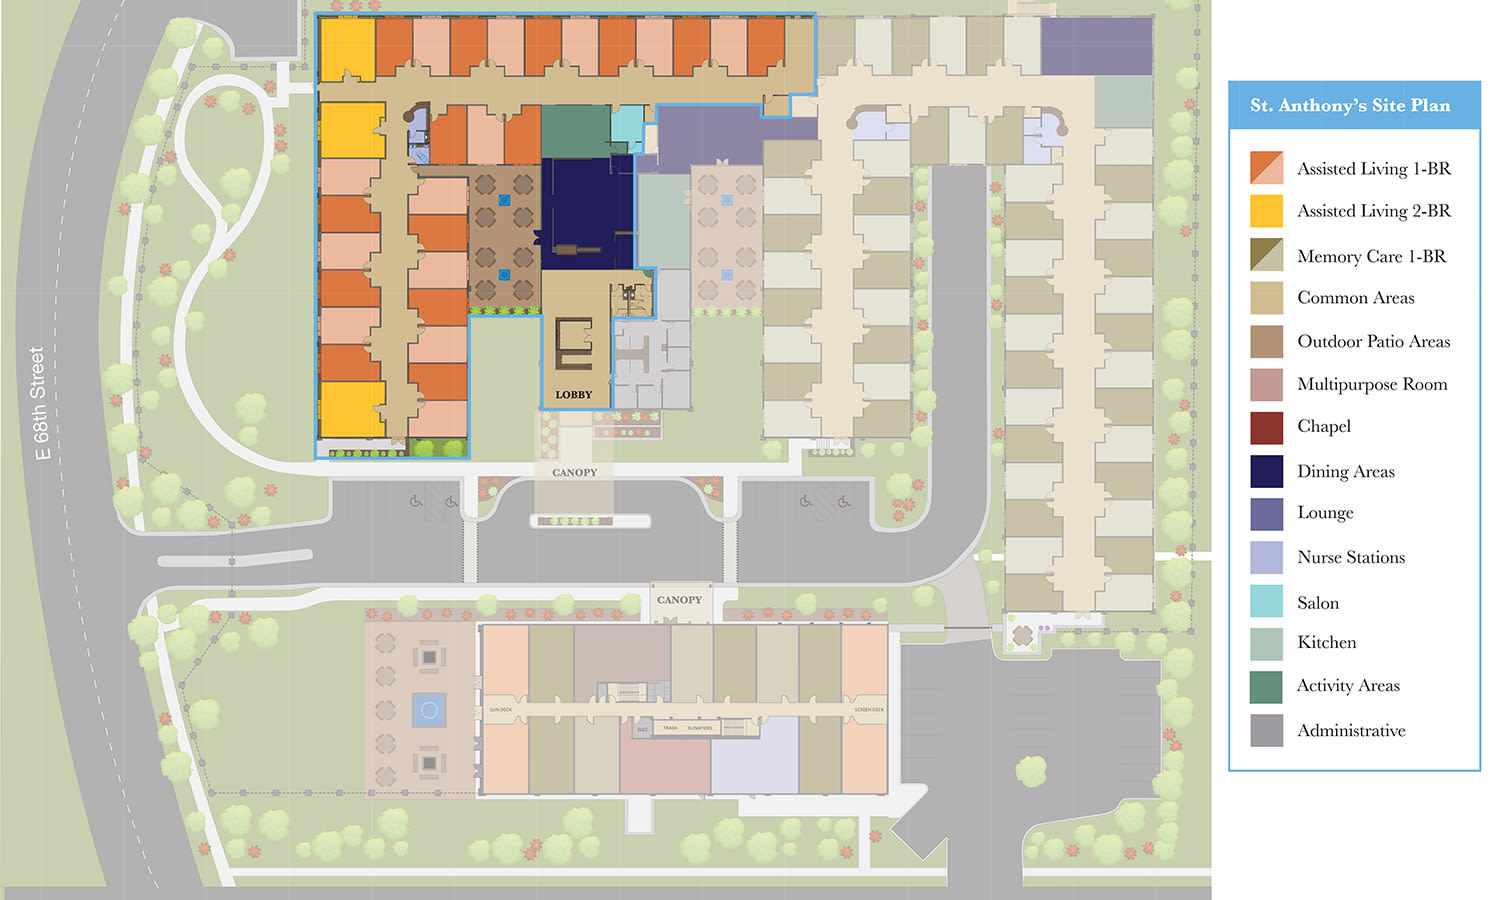 View our Assisted Living site plan